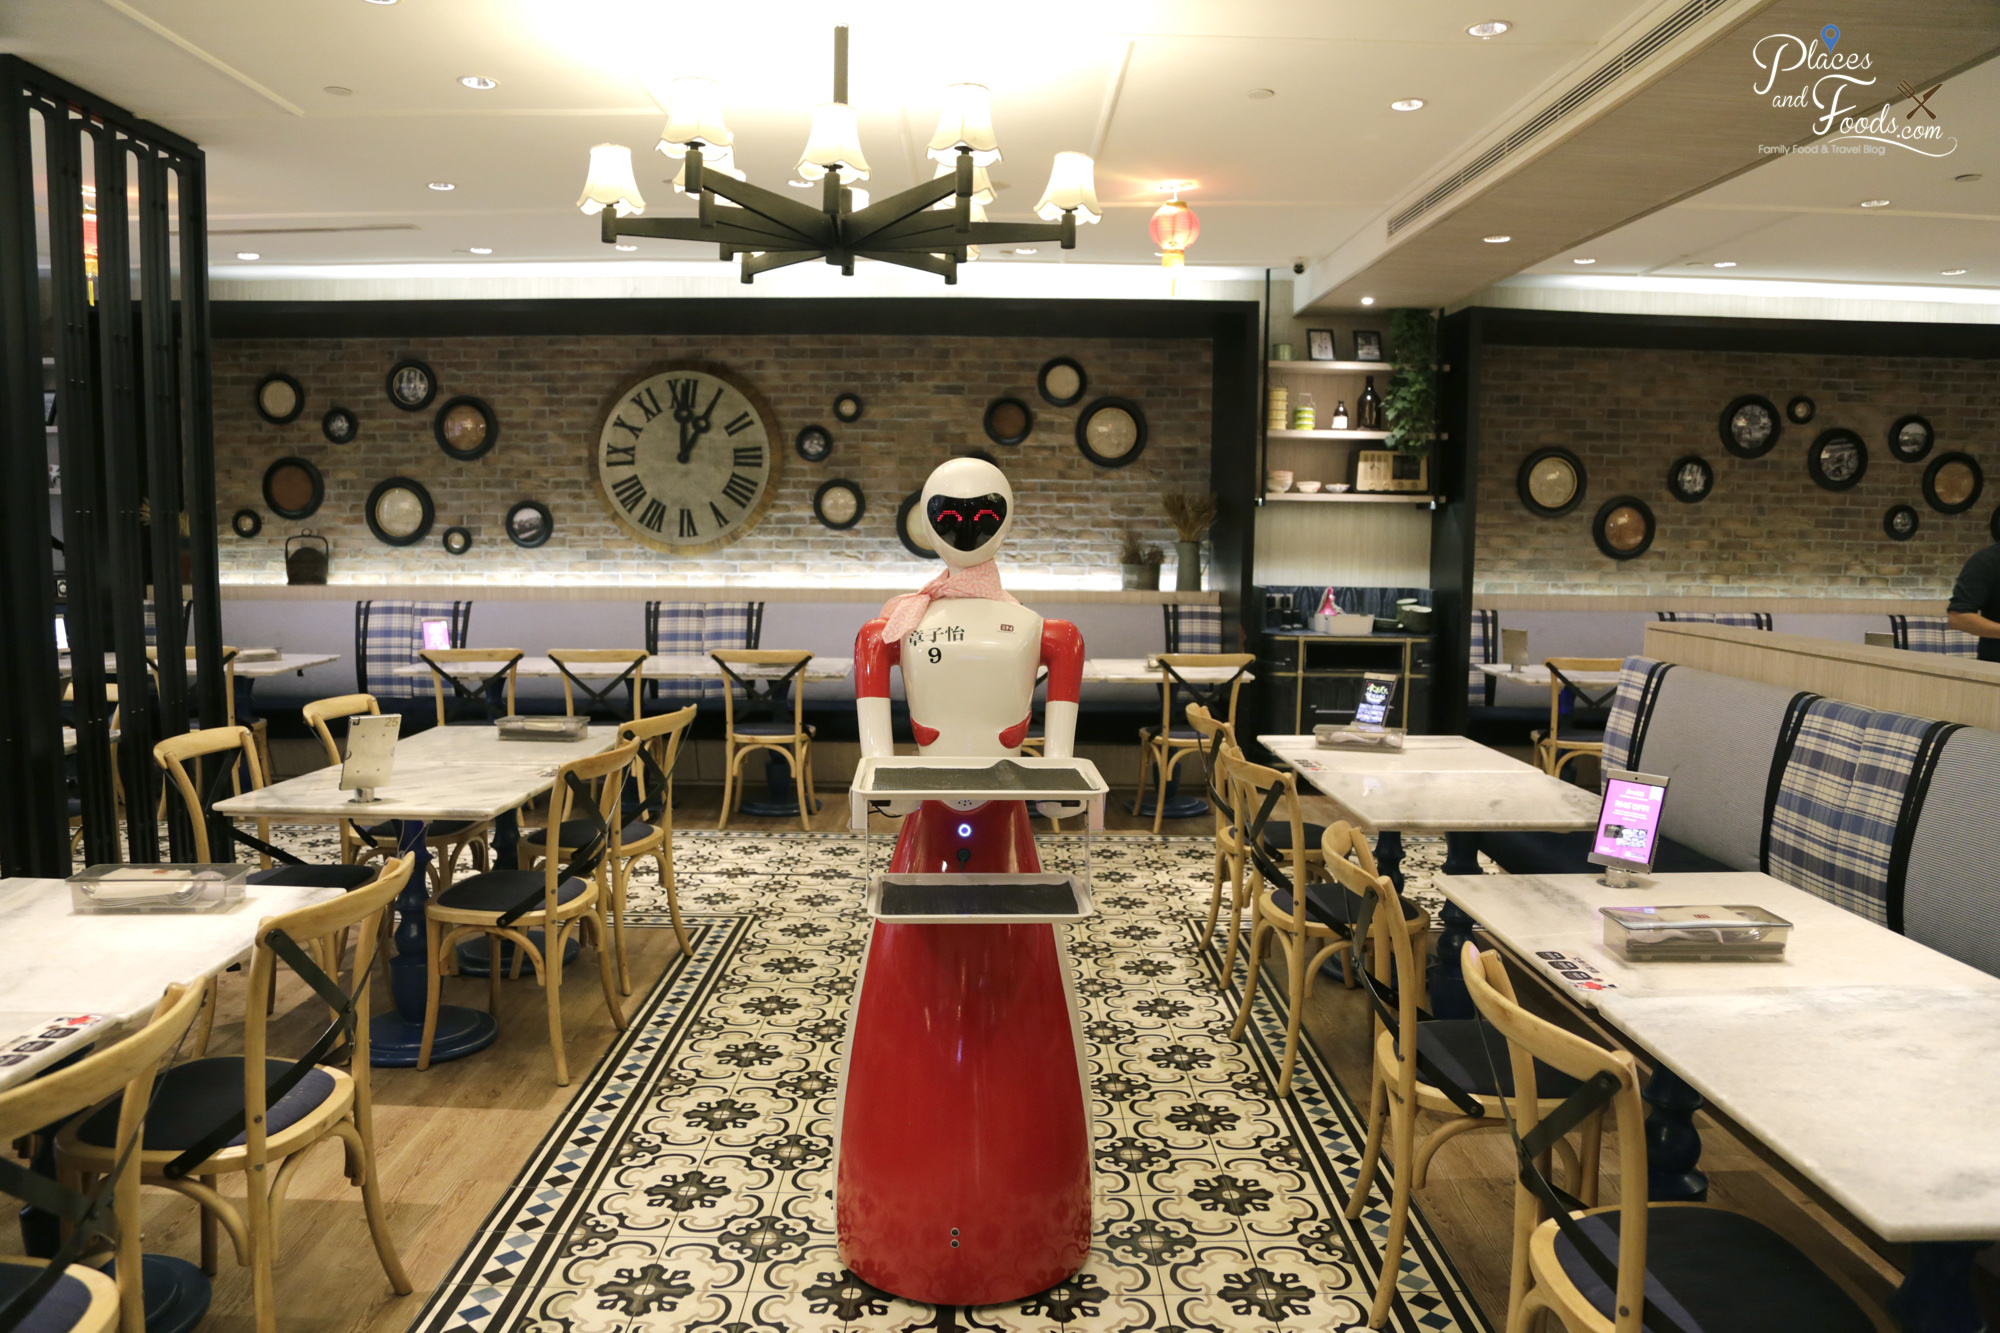 Nam Heong Ipoh Employs Robot Helpers In Malaysia